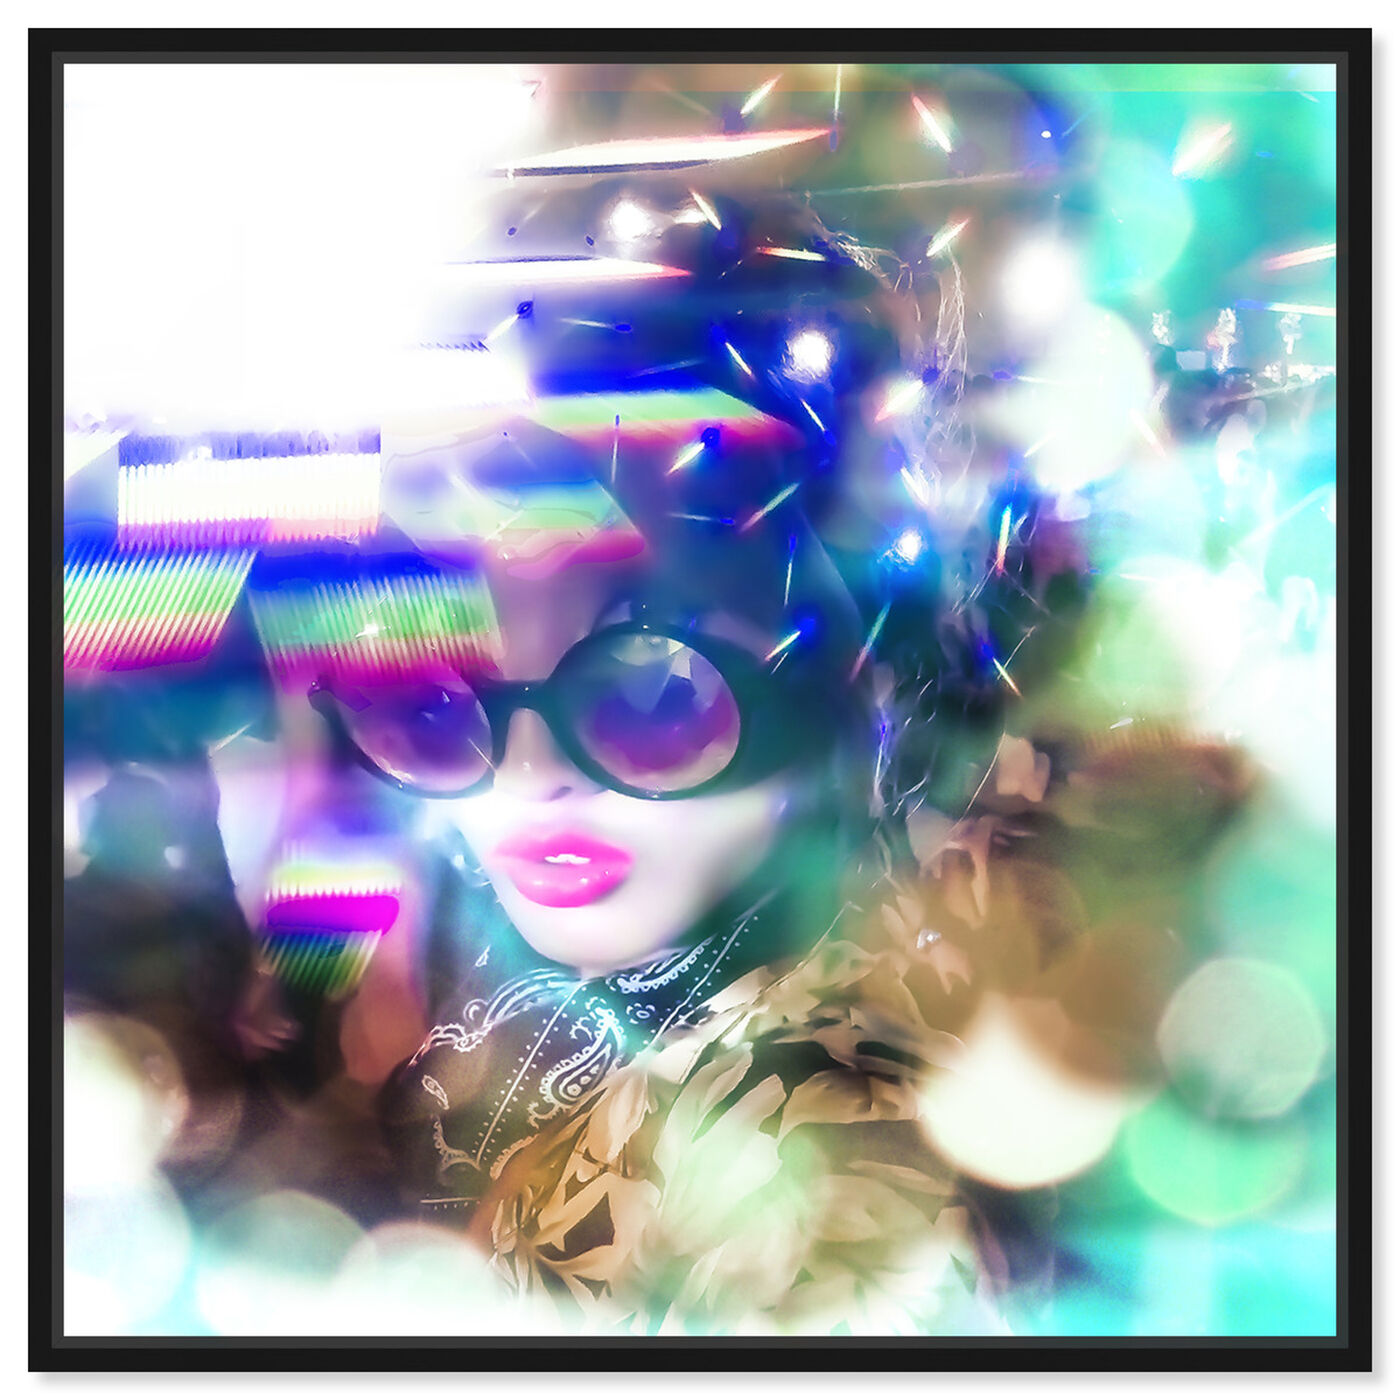 Front view of Curro Cardenal - Neon Rave featuring fashion and glam and portraits art.